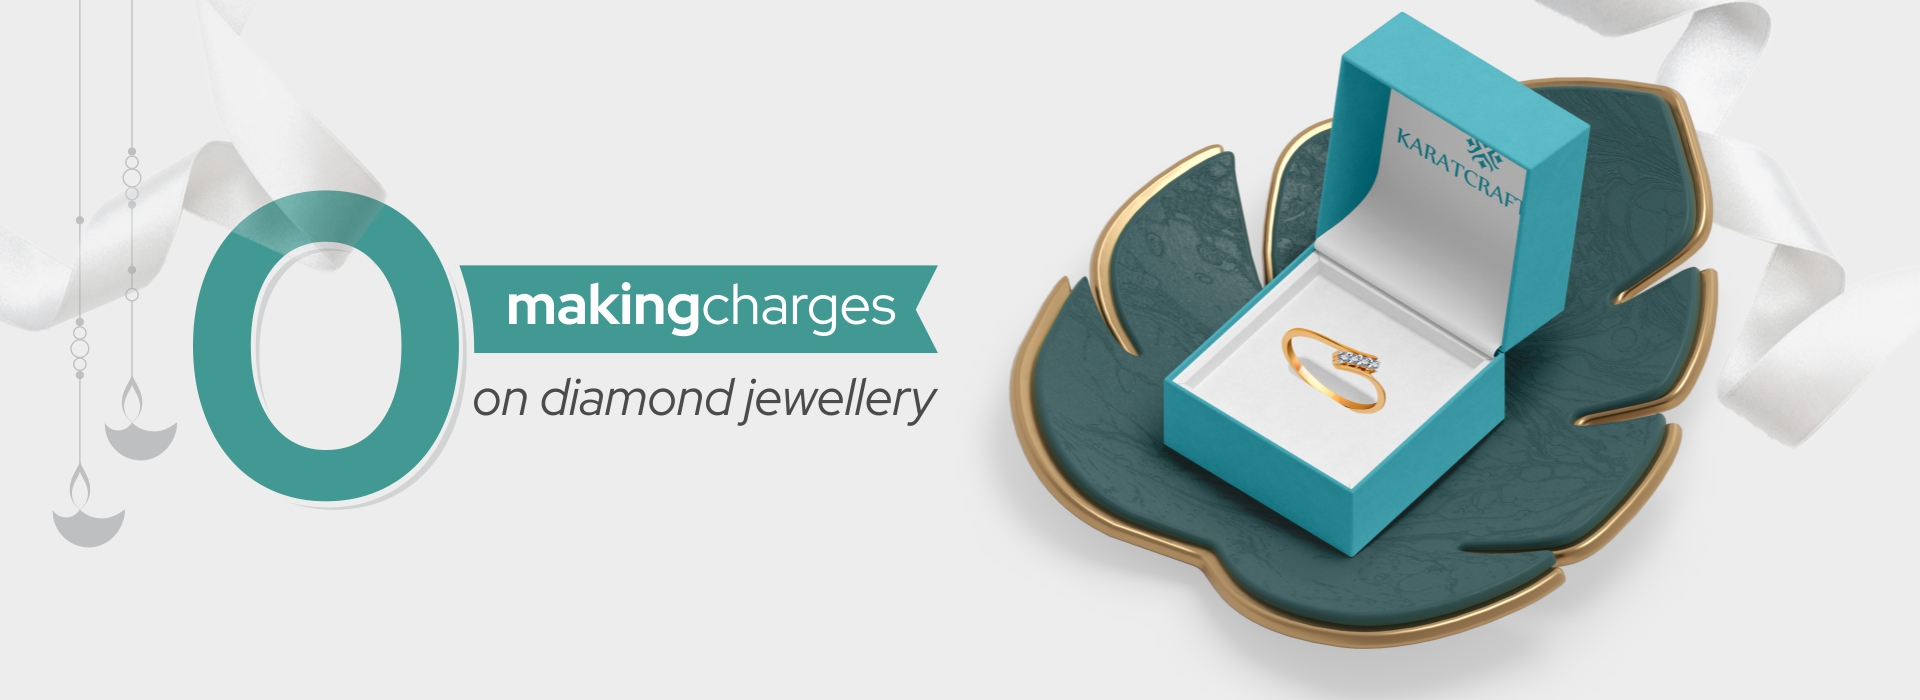 0% making charges on diamond Jewellery.